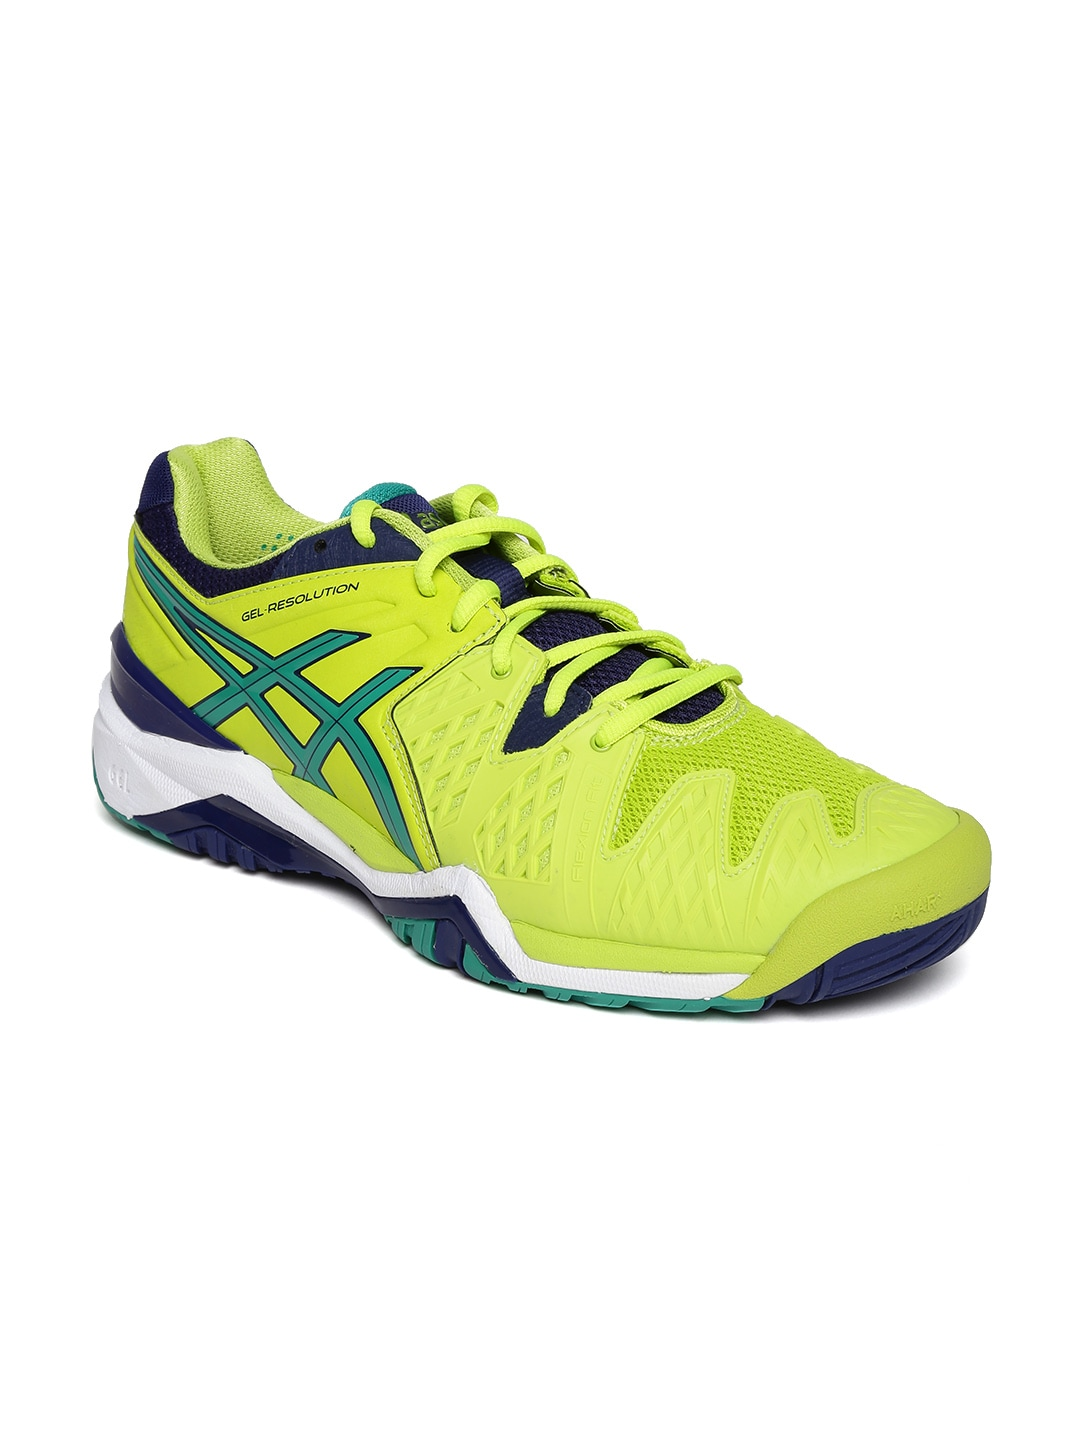 8076e2b13 Asics e500y-0588 Men Lime Green Gel Resolution 6 Tennis Shoes- Price in  India